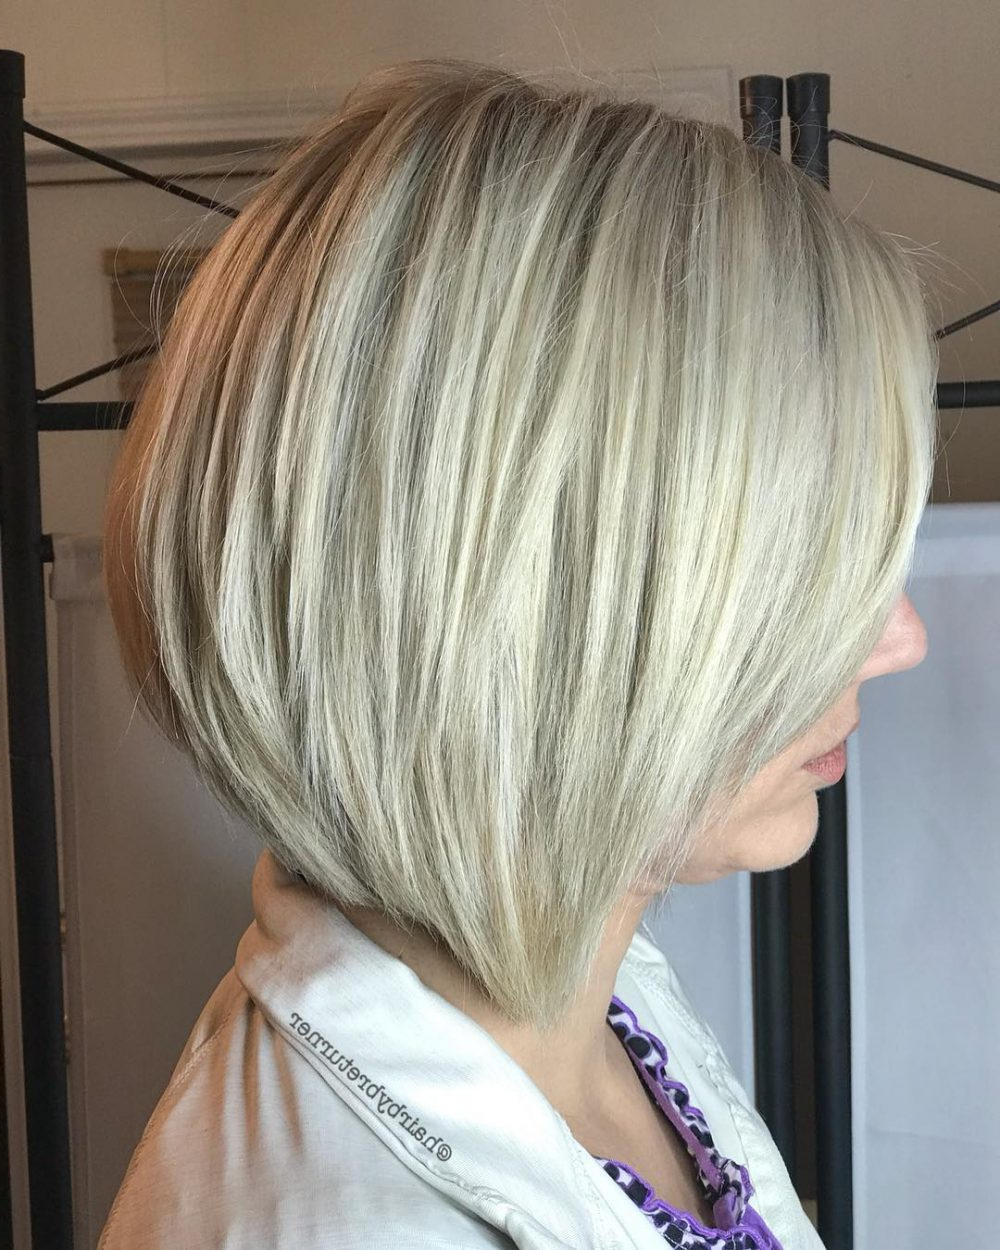 42 Sexiest Short Hairstyles For Women Over 40 In 2018 Within Women Short To Medium Hairstyles (View 4 of 25)